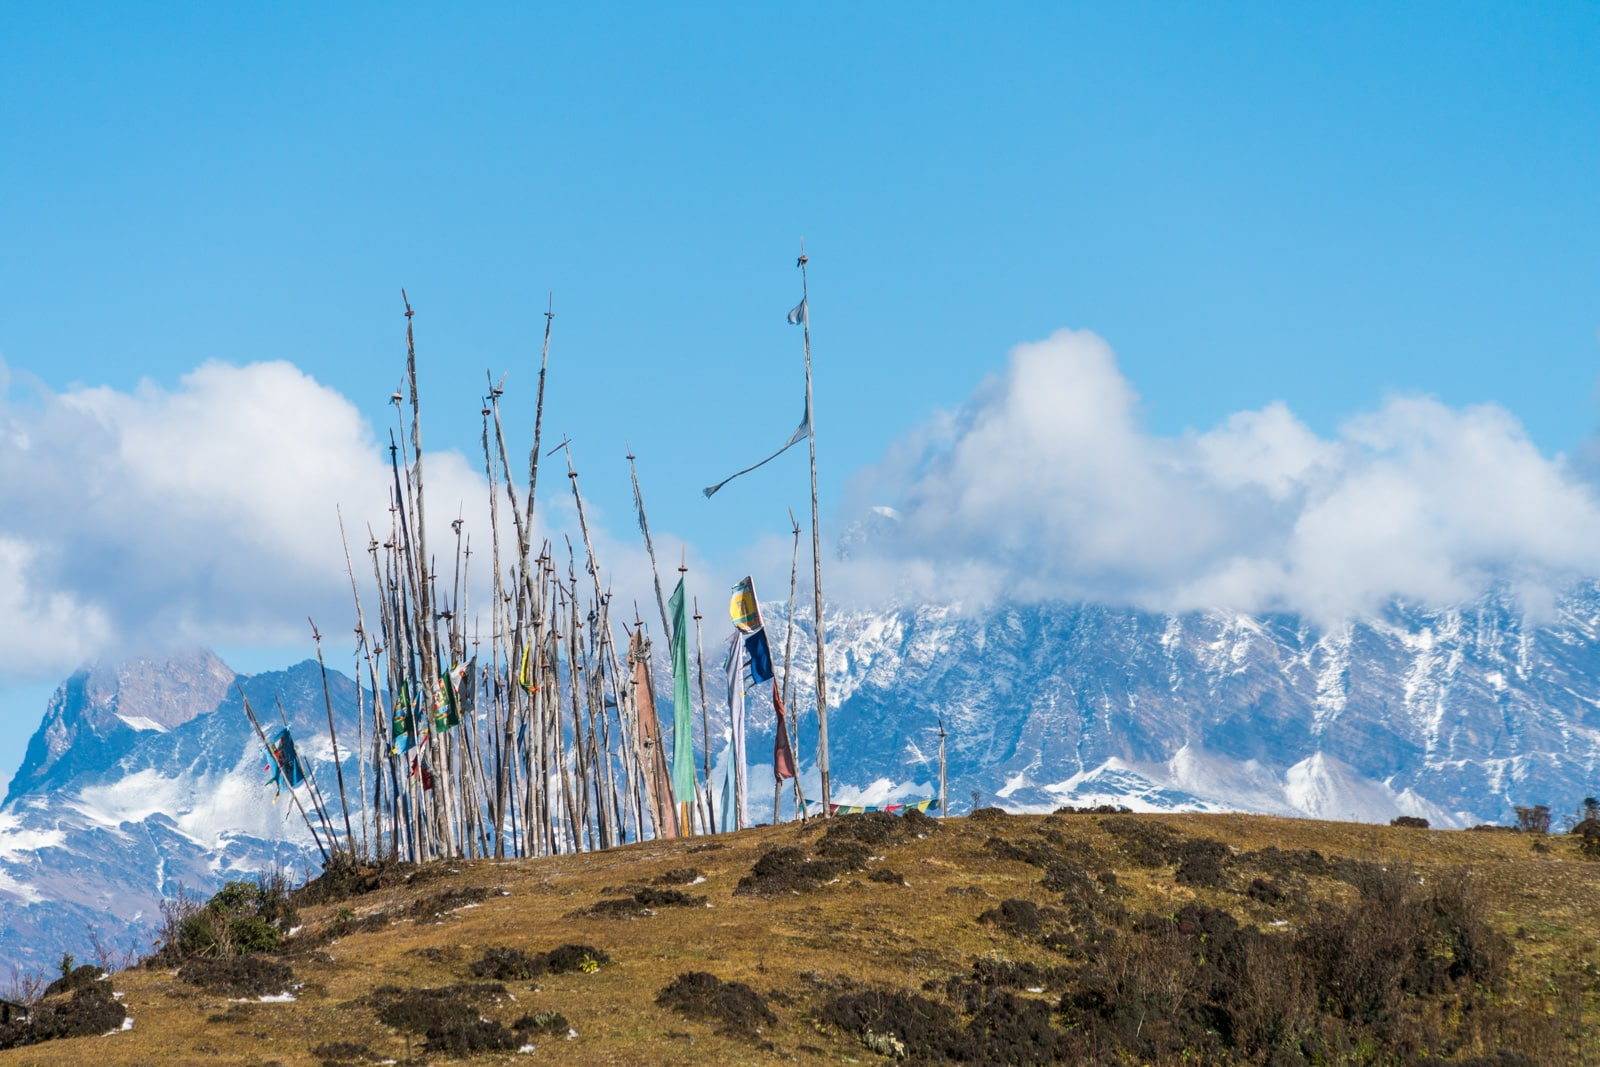 Photos of Bhutan - Prayer flags in front of snowy mountains on the Druk Path - Lost With Purpose travel blog